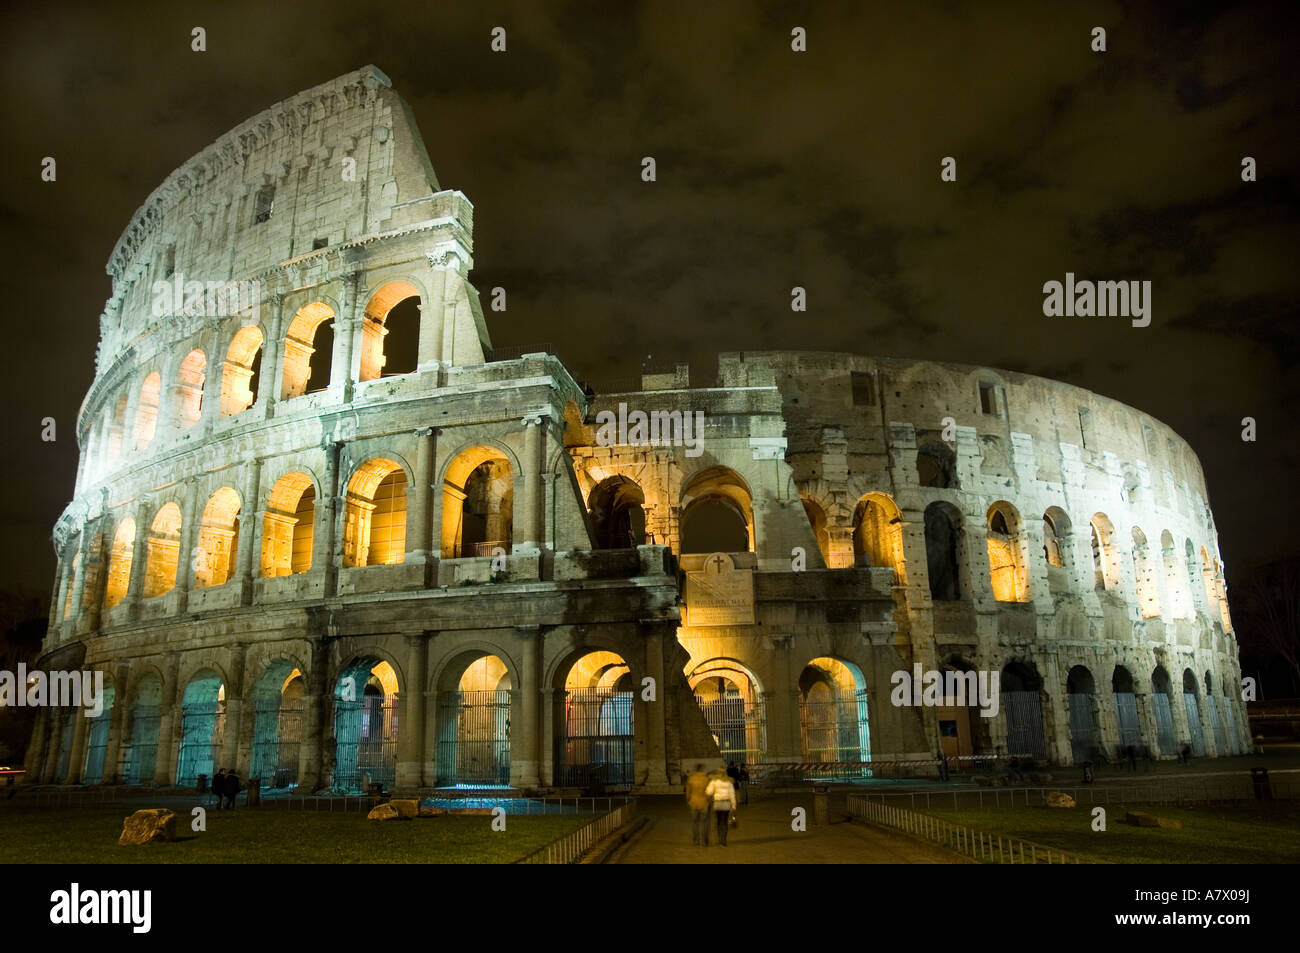 Couple in front of coliseum rome by night - Stock Image